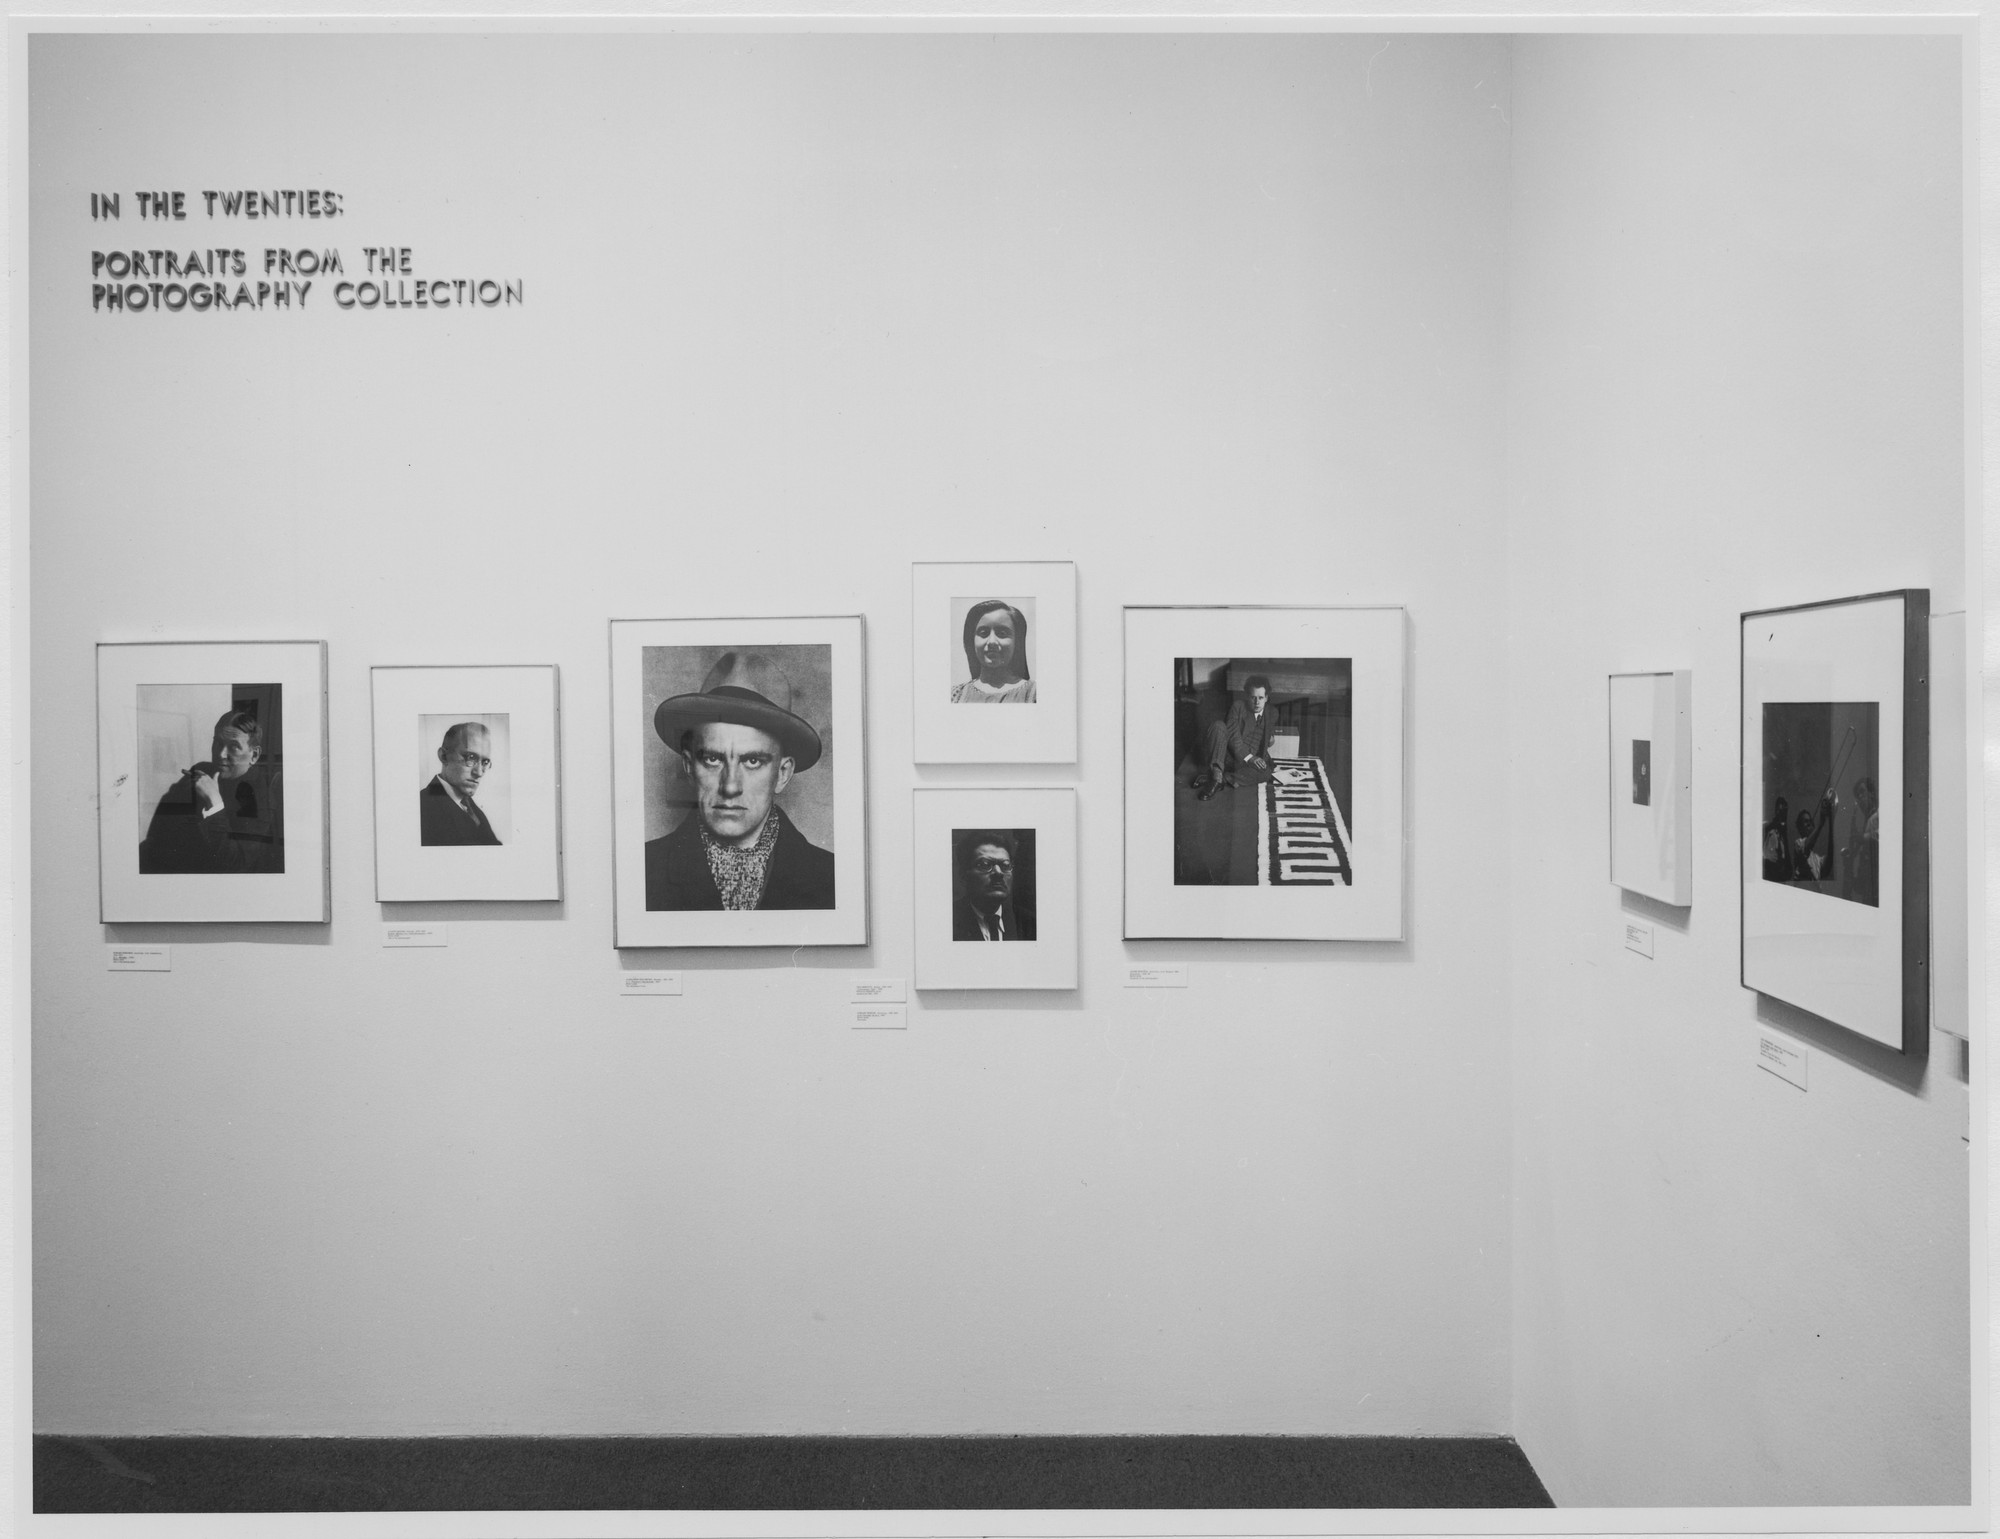 "Installation view of the exhibition, ""In the Twenties: Portraits from the Photography Collection"" November 14, 1979–March 16, 1980. Photographic Archive. The Museum of Modern Art Archives, New York. IN1278.1. Photograph by Mali Olatunji."